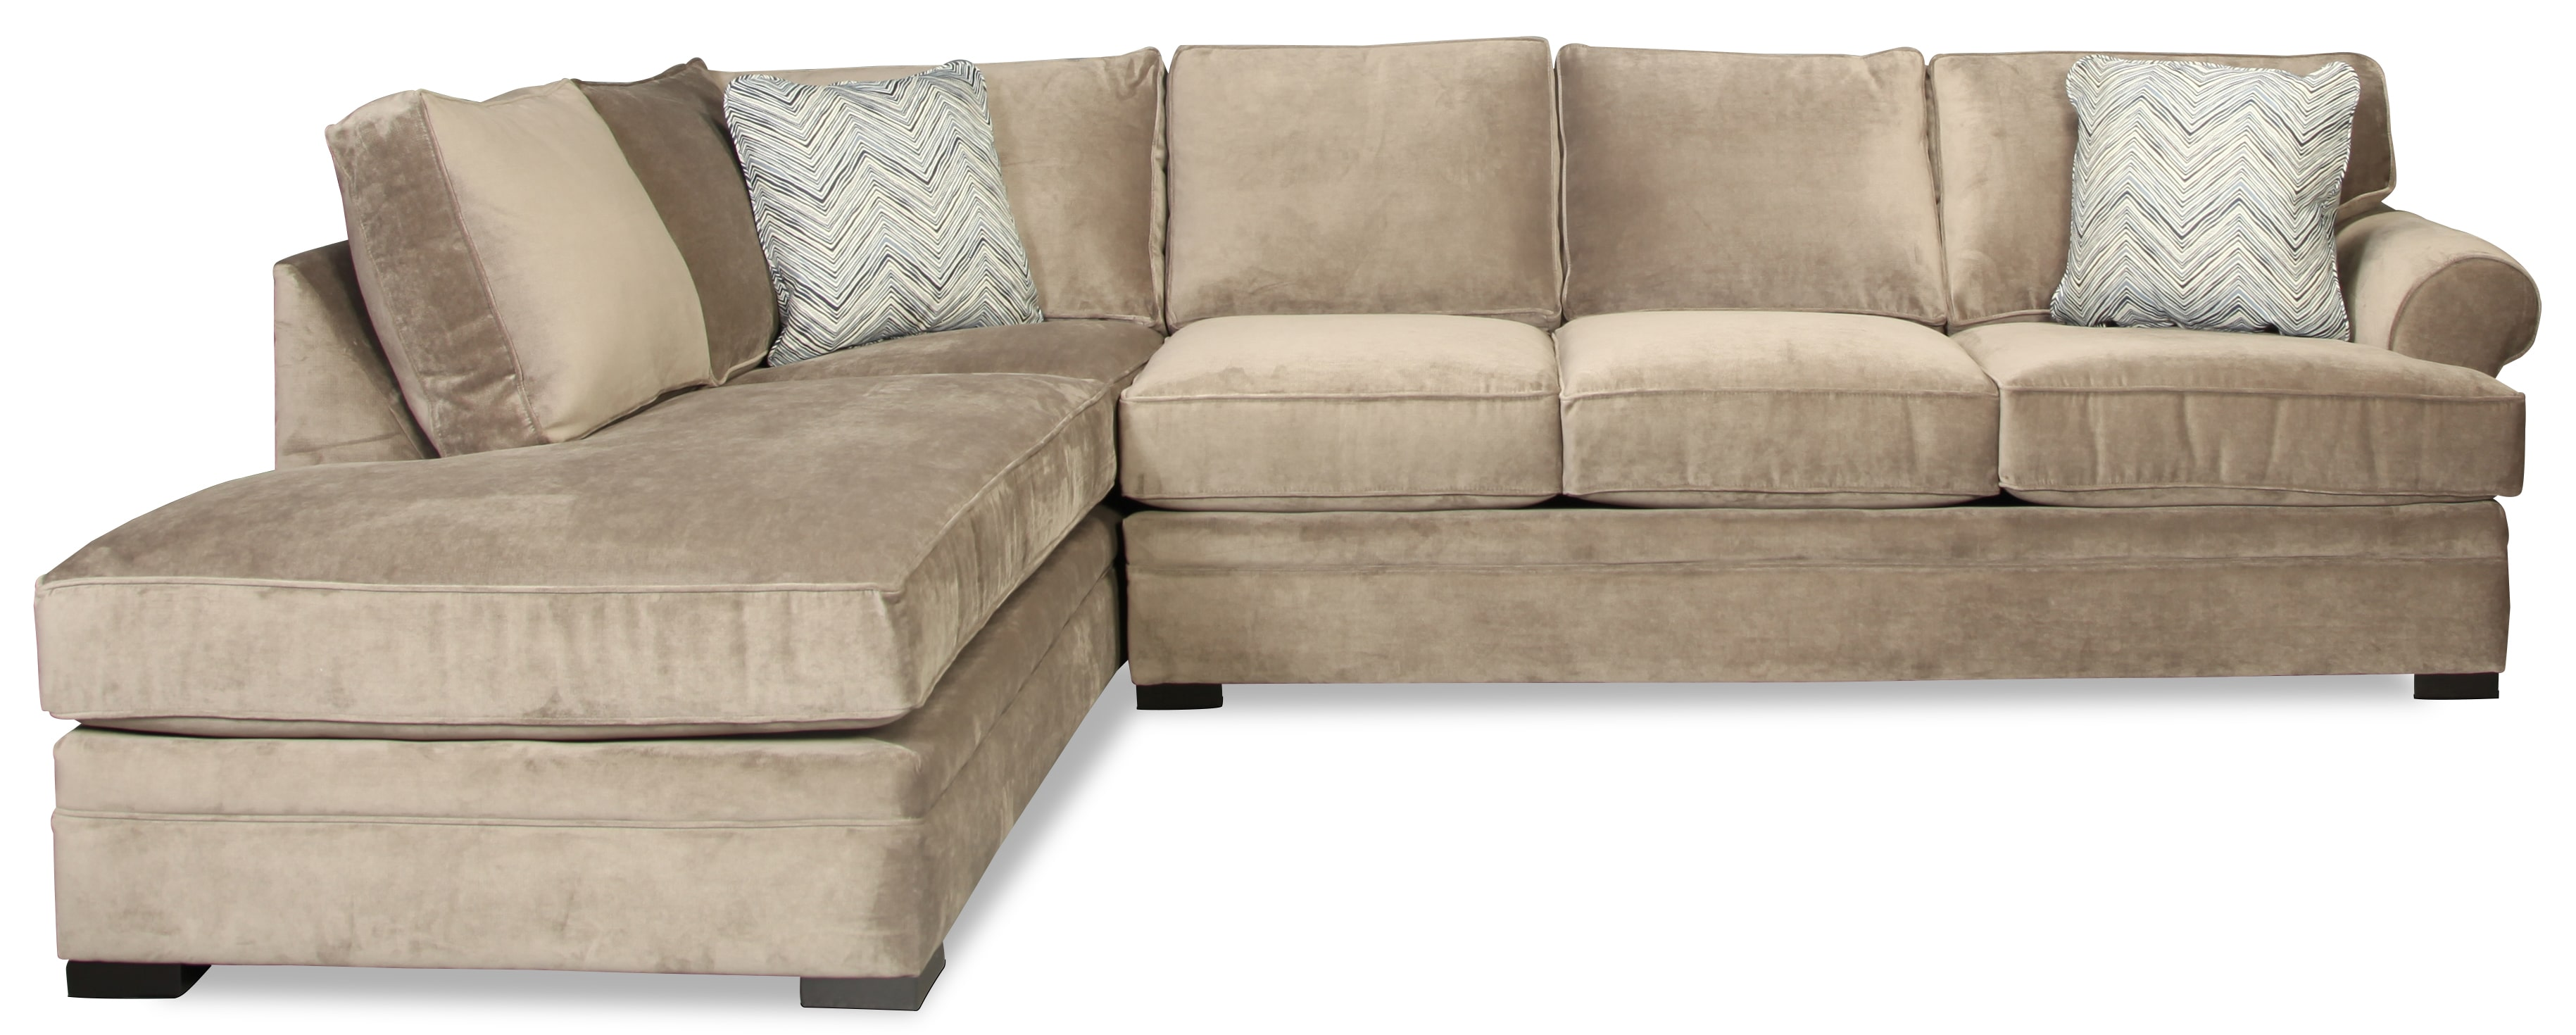 Living Room Furniture - Cheney 2 Piece Sectional